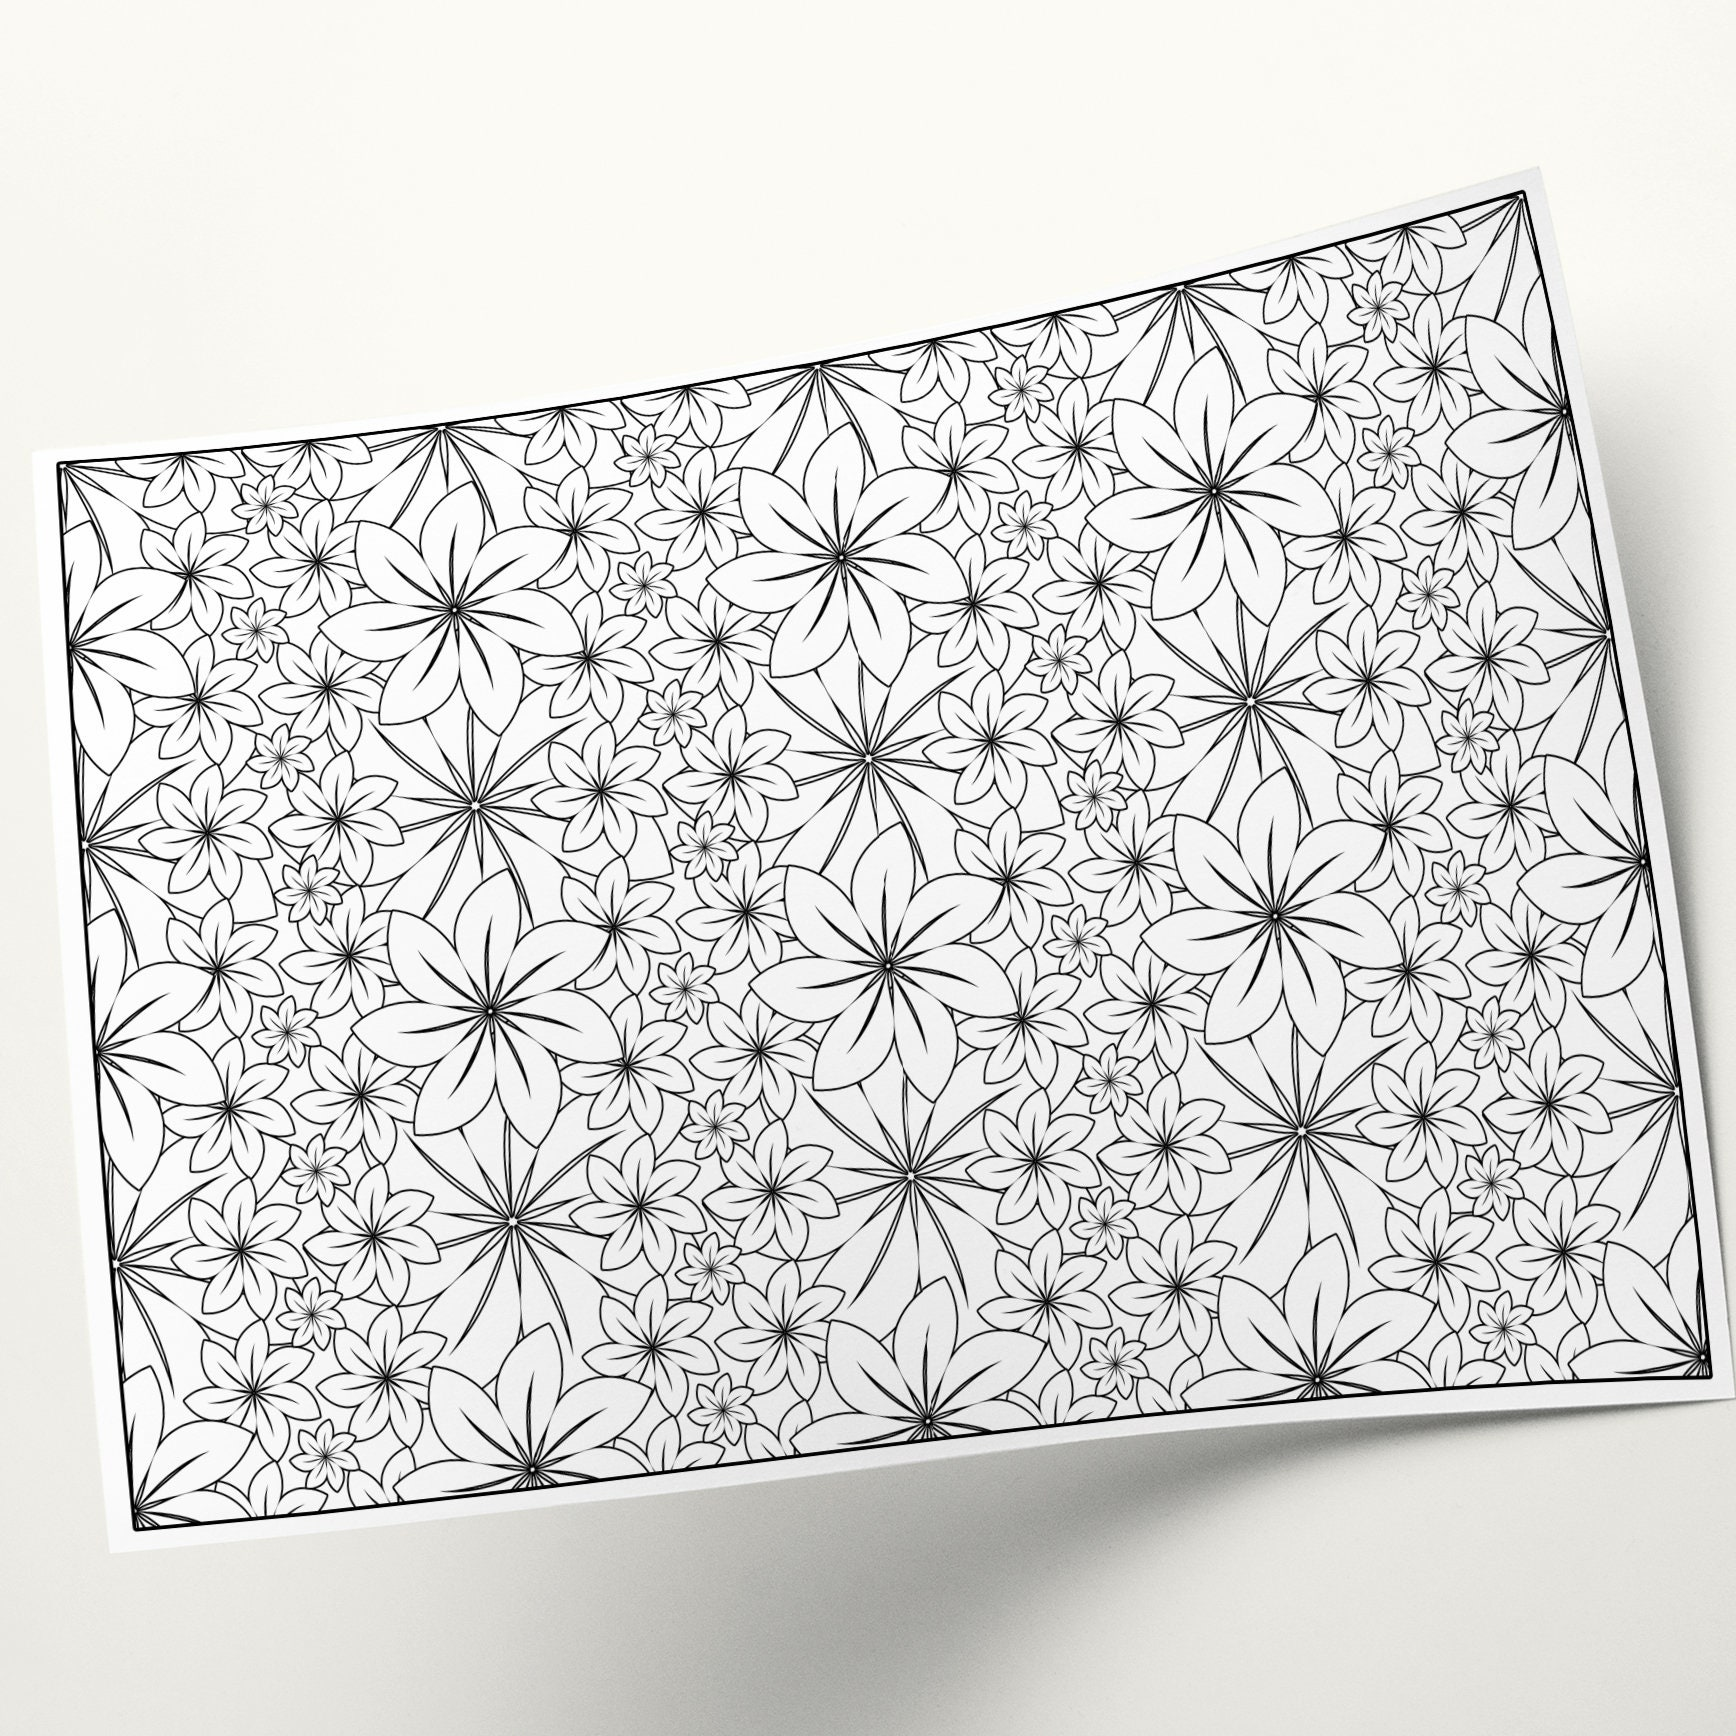 Coloring Pages Adult Coloring Floral Art Flower Illustration Etsy